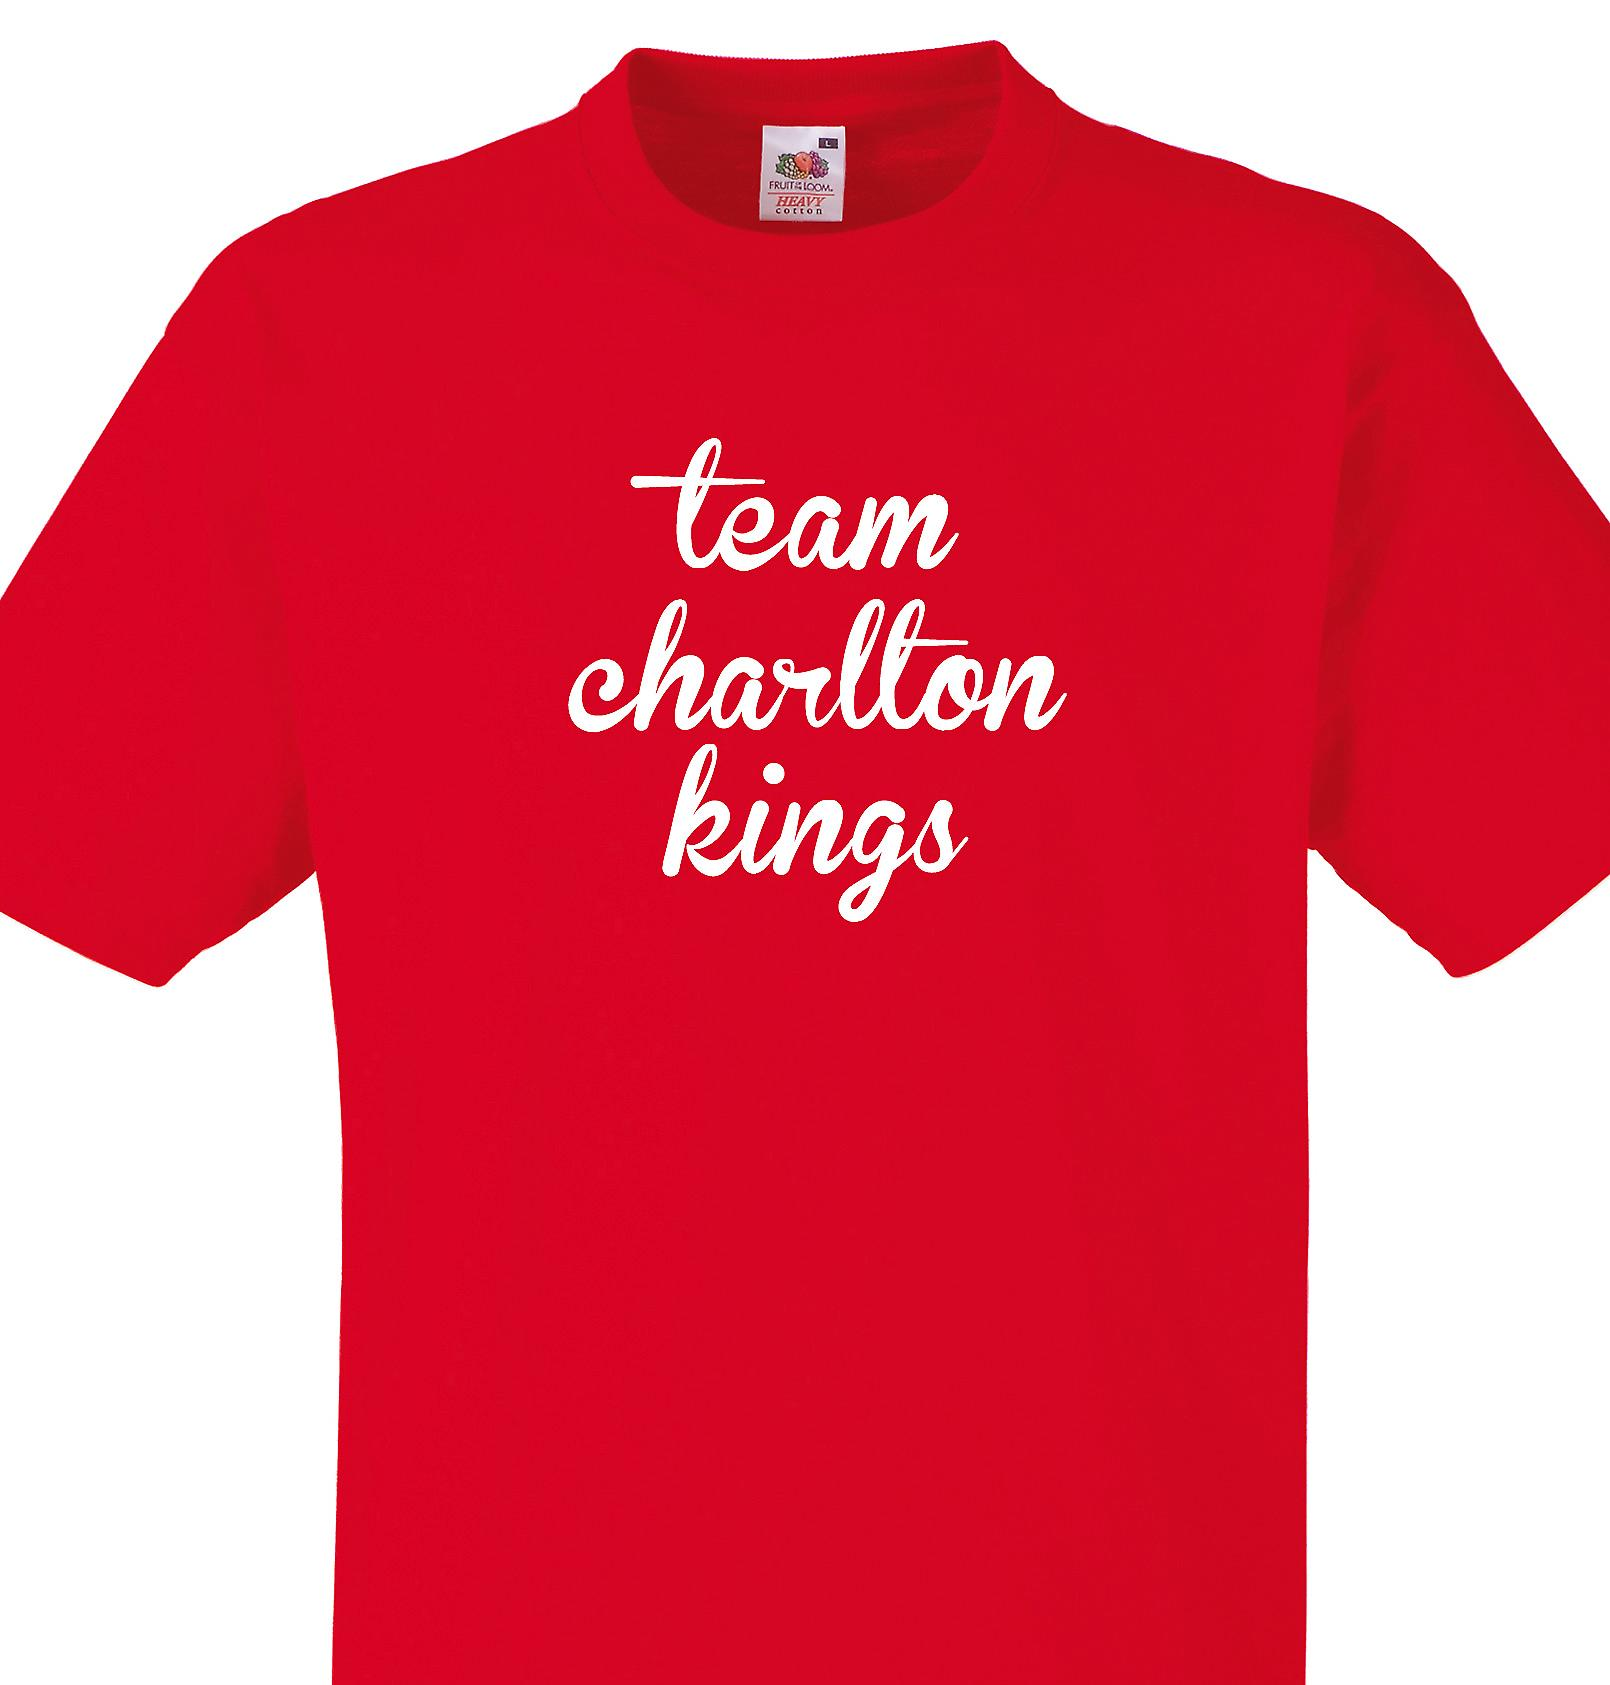 Team Charlton kings Red T shirt